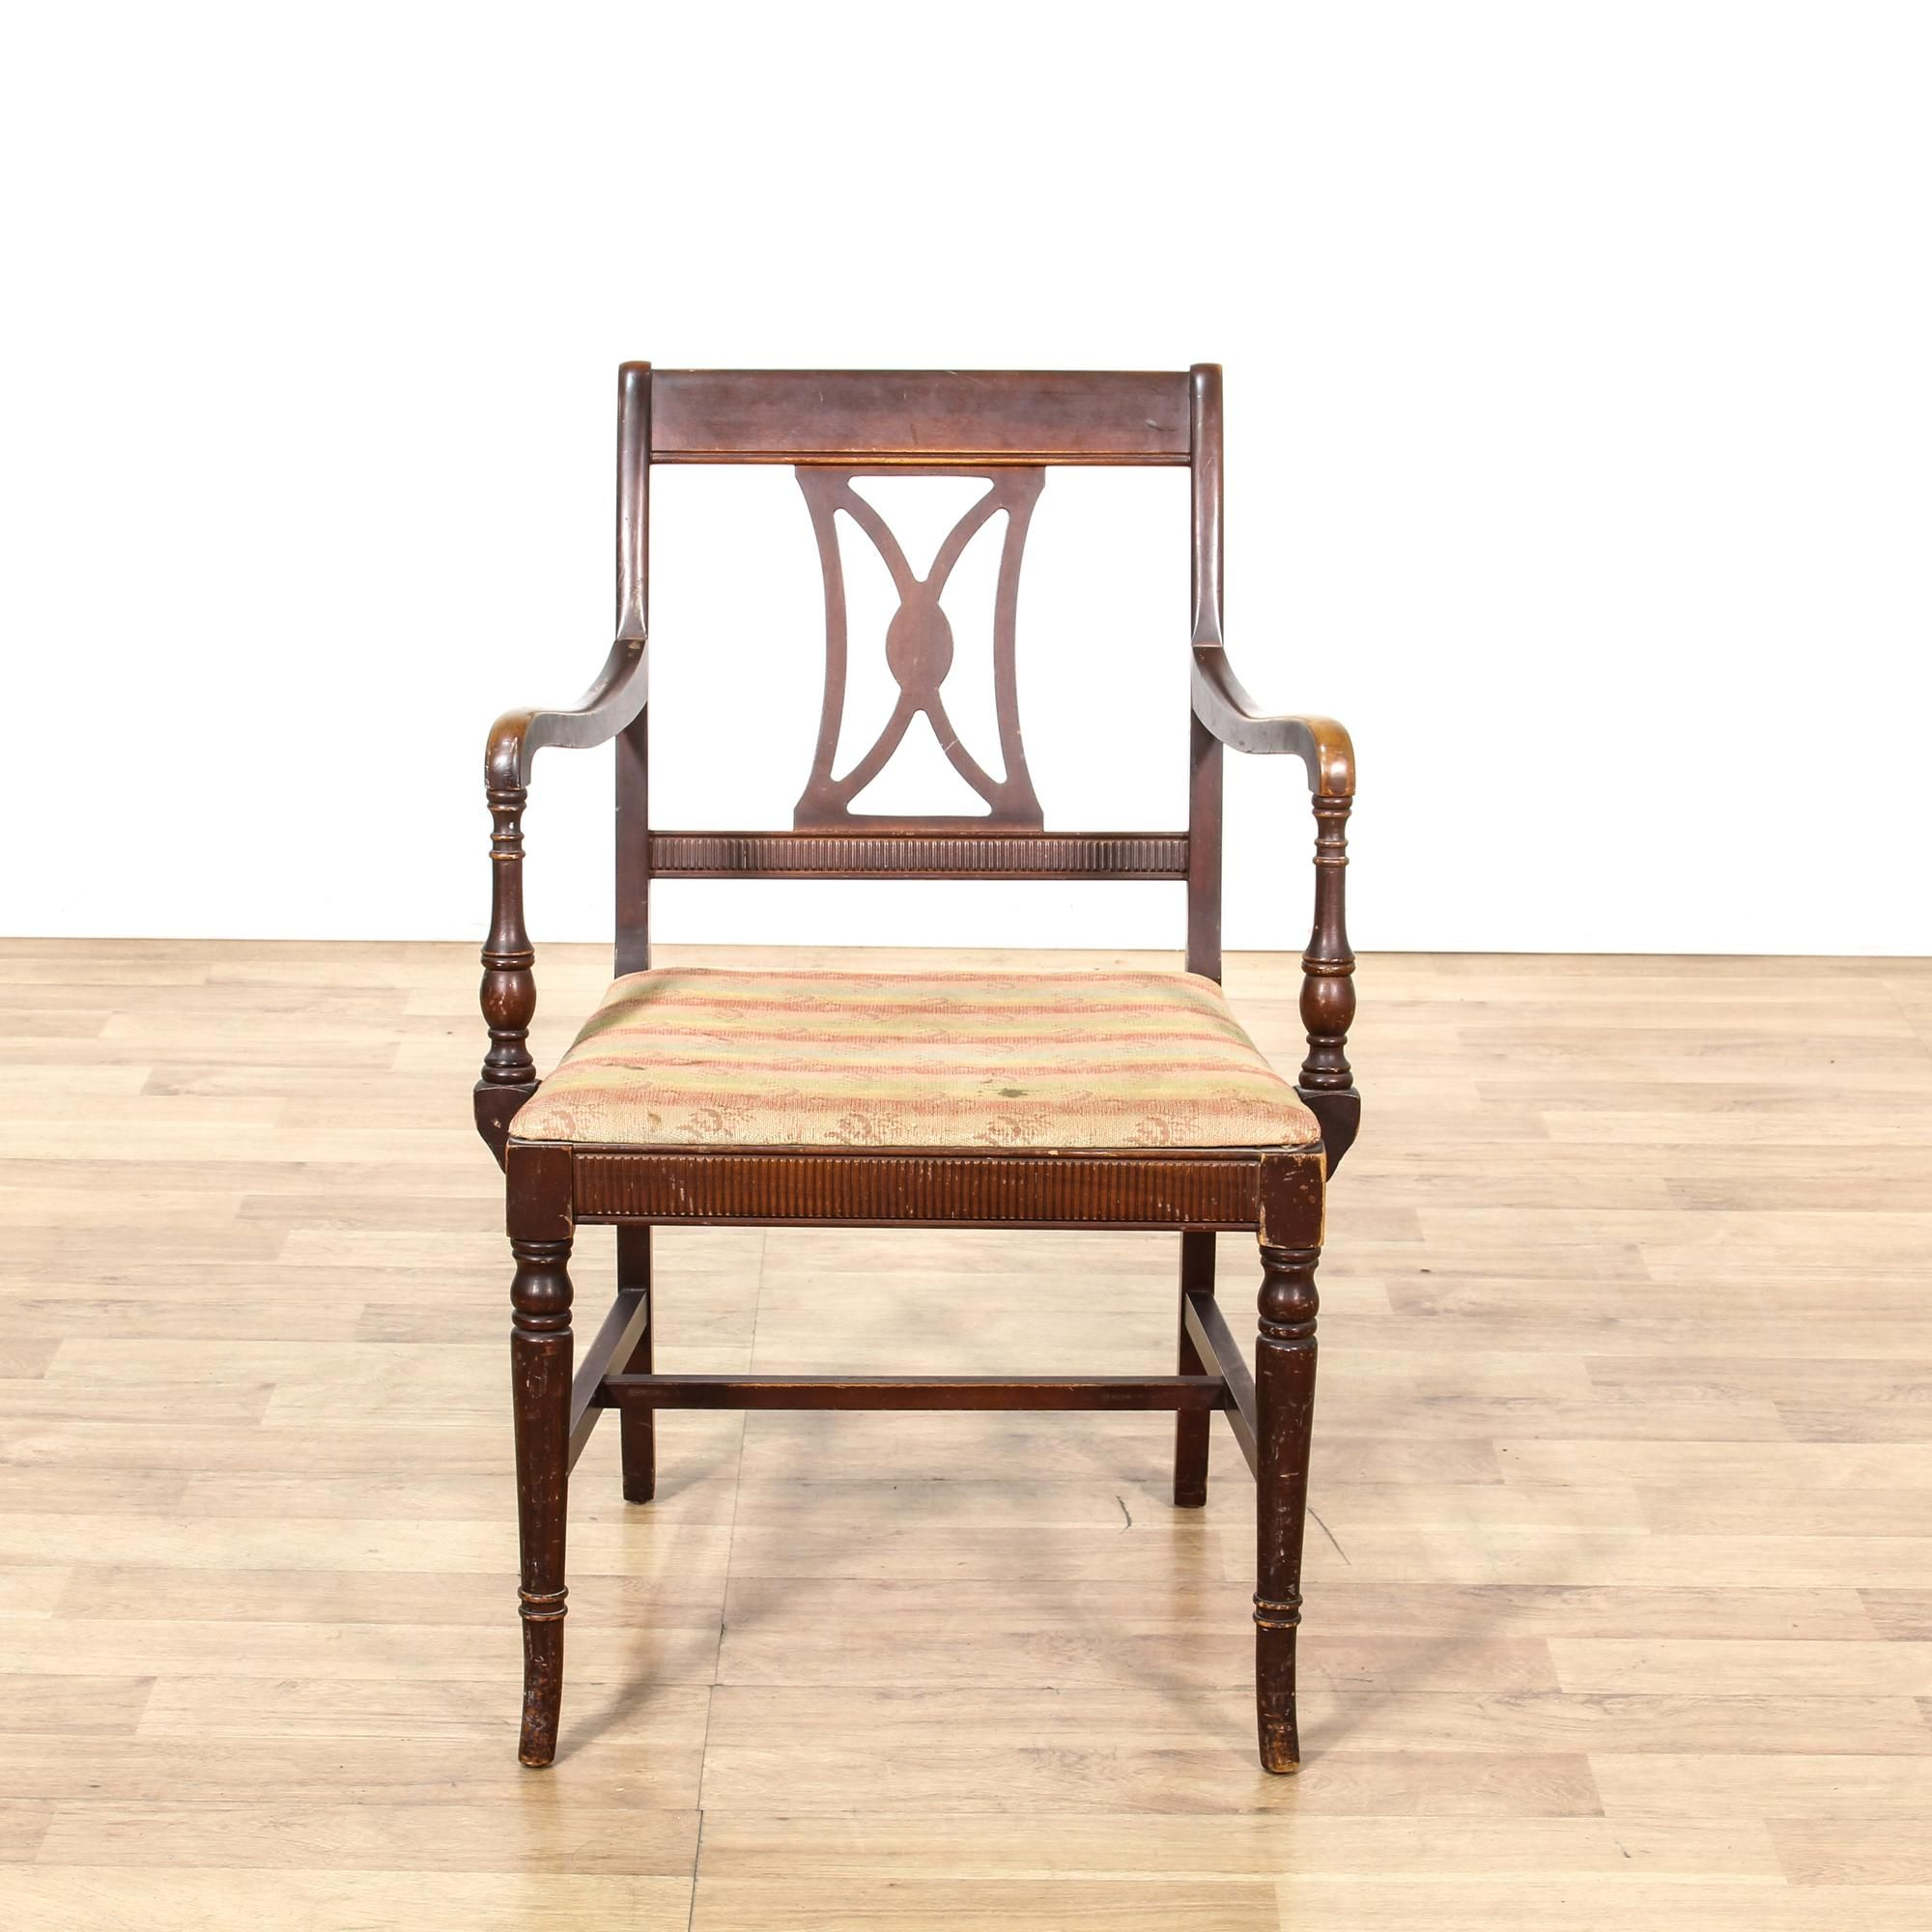 This Accent Chair Is Featured In A Solid Wood With A Glossy Walnut Finish This Traditional Style Armchair Has H Stretcher Wooden Chair Chair Vintage Furniture